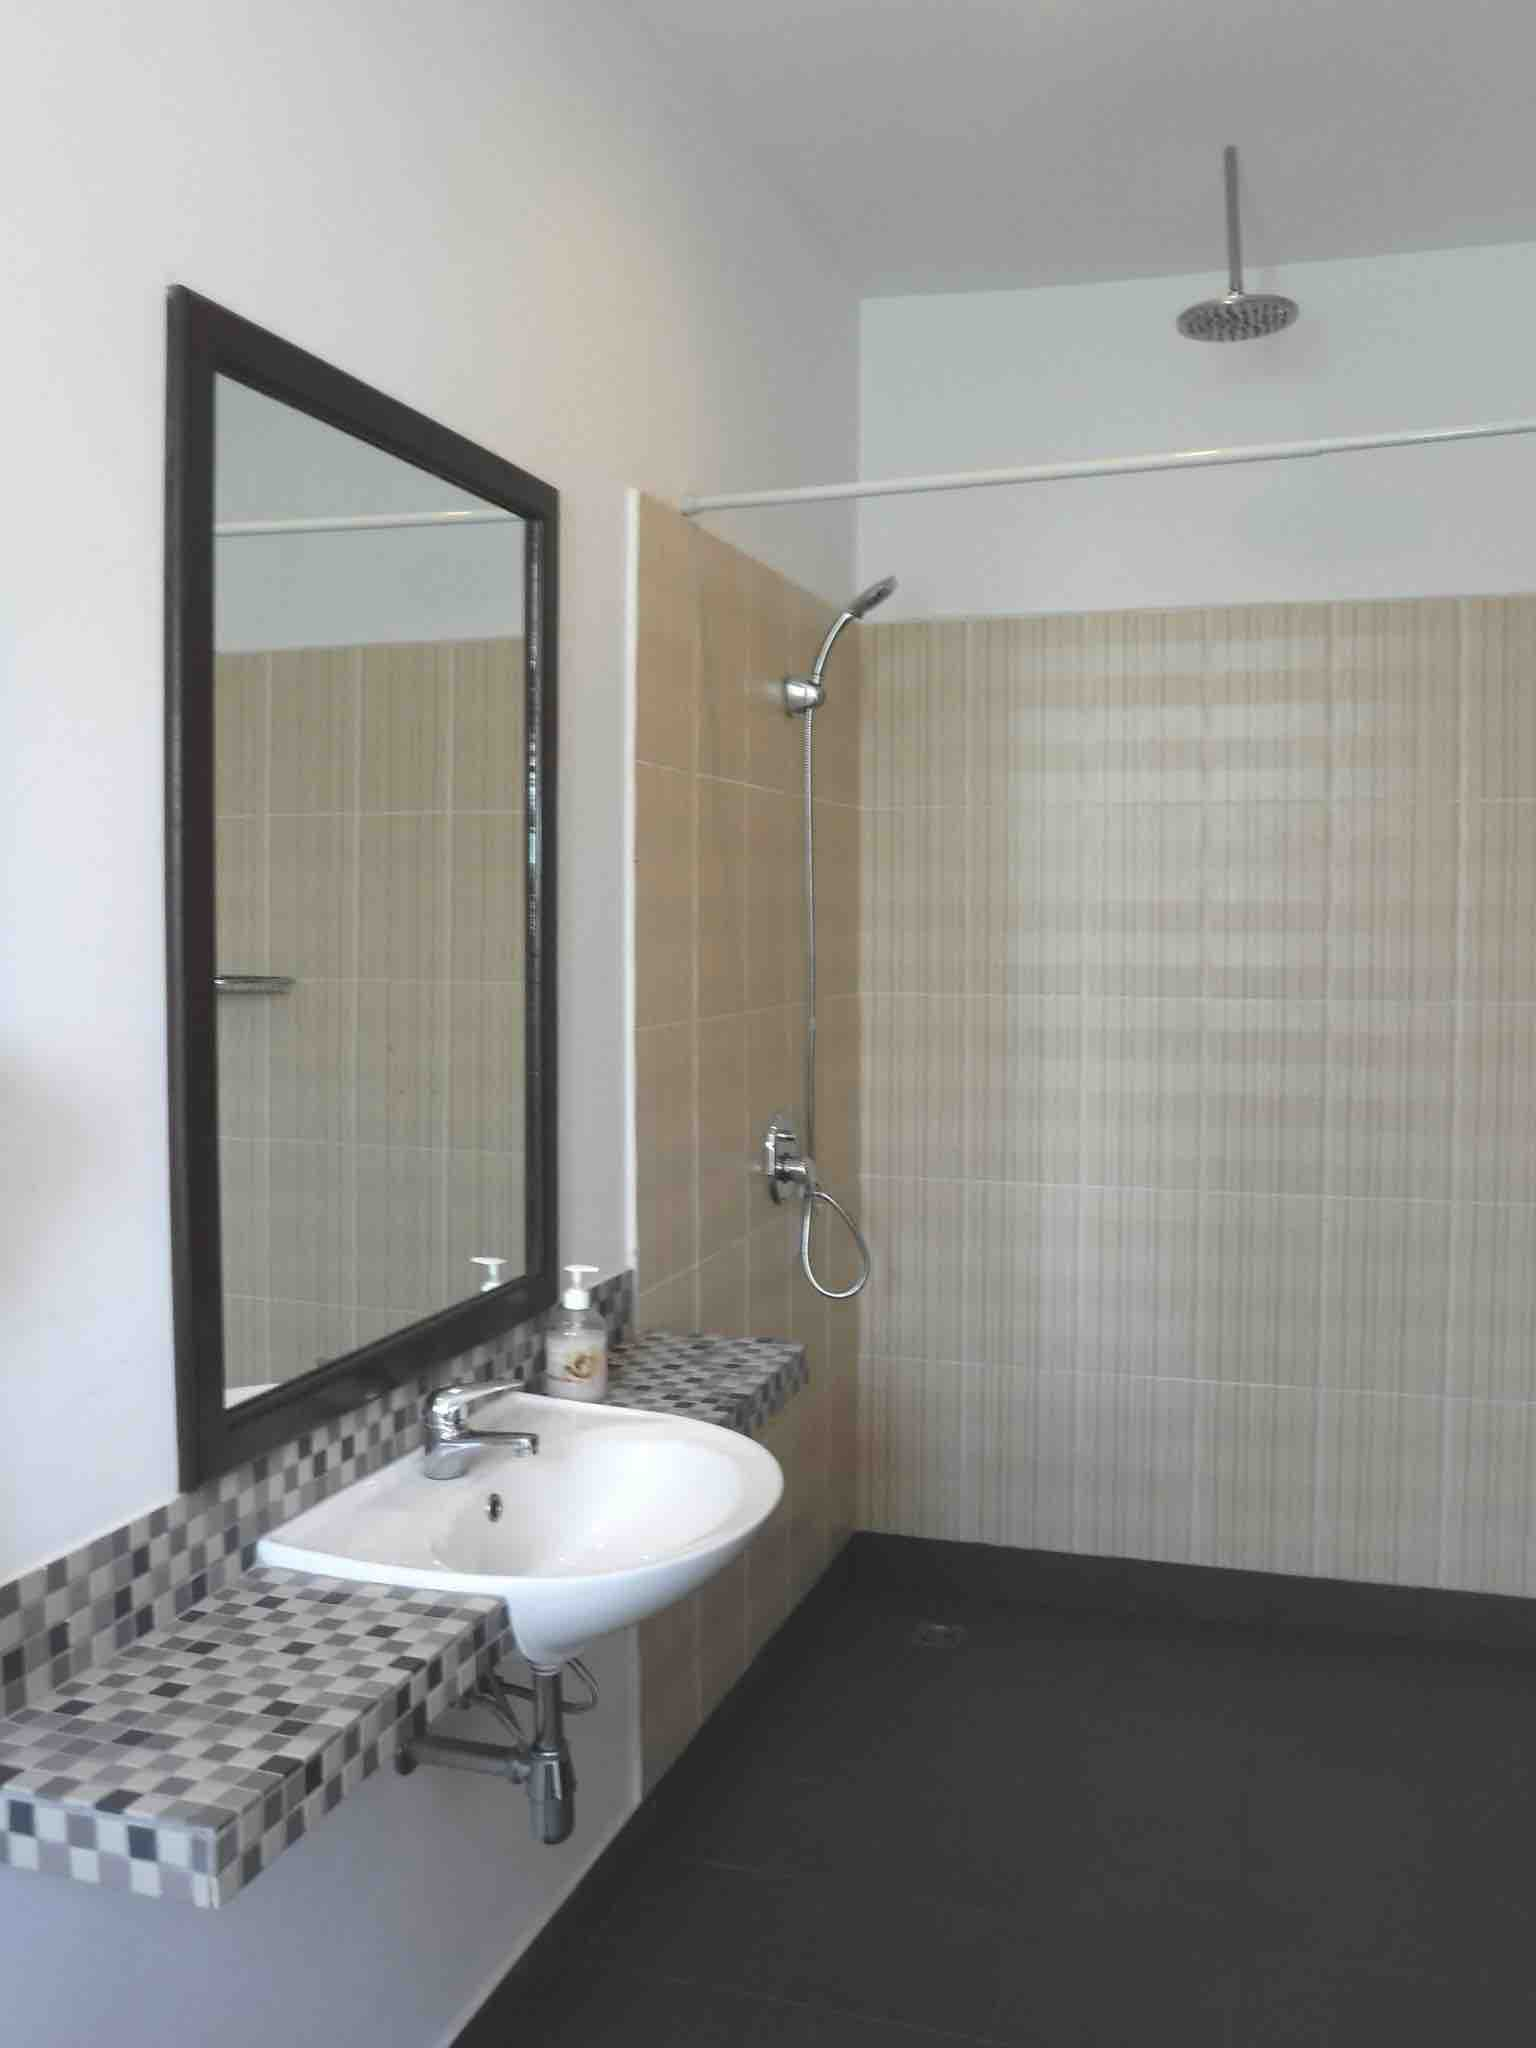 The Billabong Hotel - Other rooms